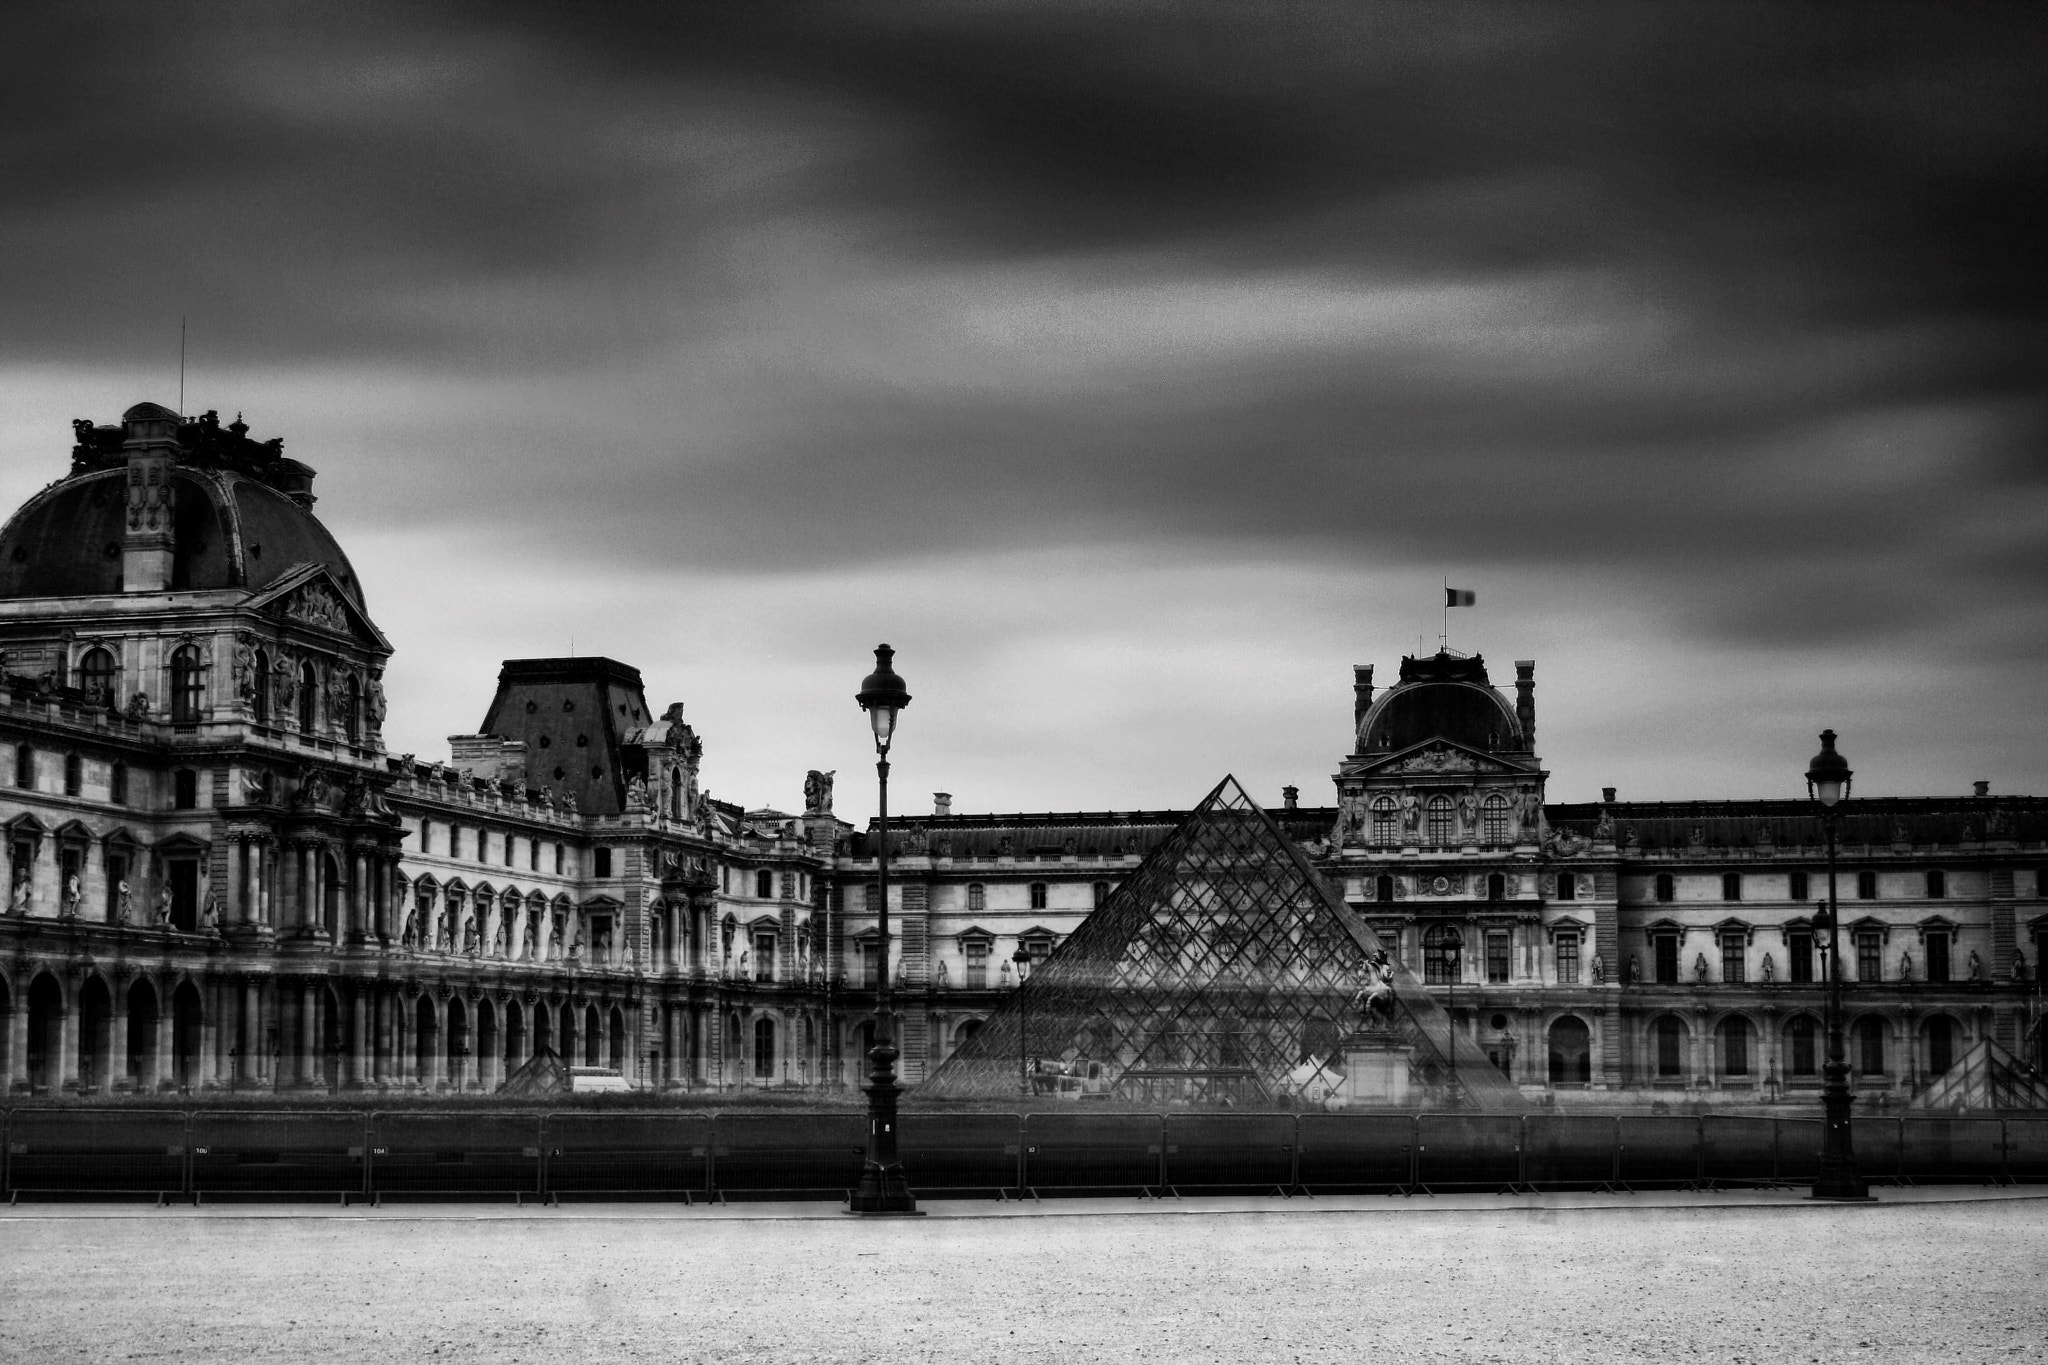 Photograph Le Louvre by Jurjen Harmsma on 500px